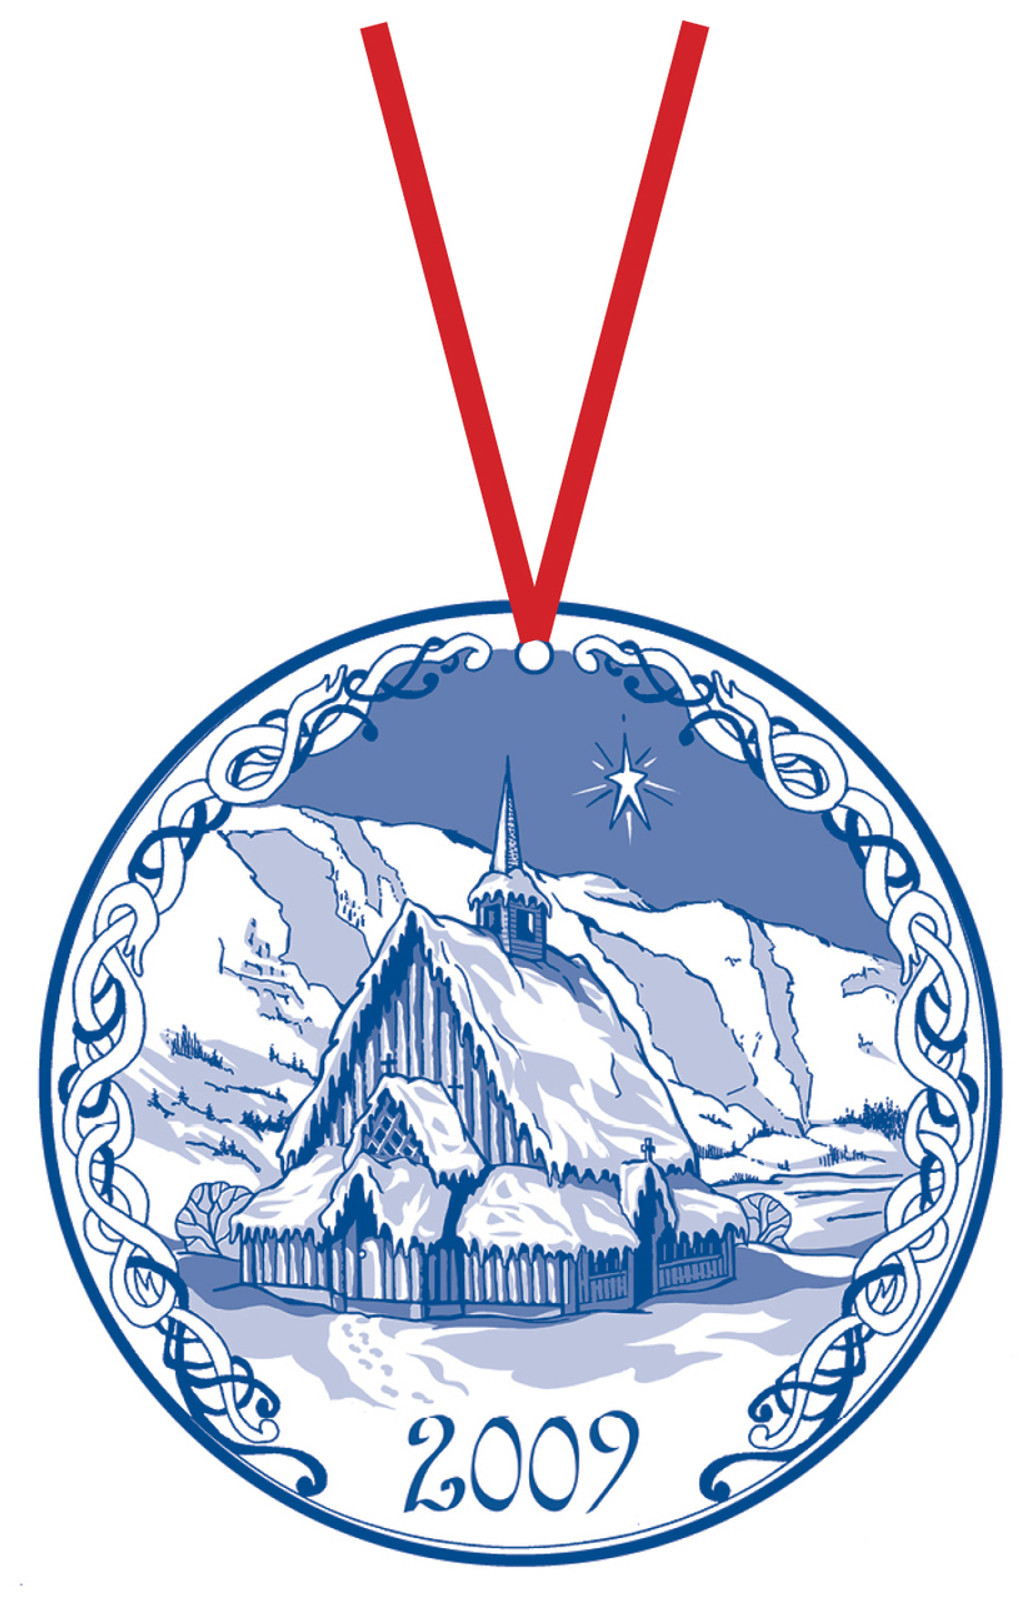 2009 Stav Church Ornament - Oye. Made by Norse Traditions and available at The Nordic Shop.